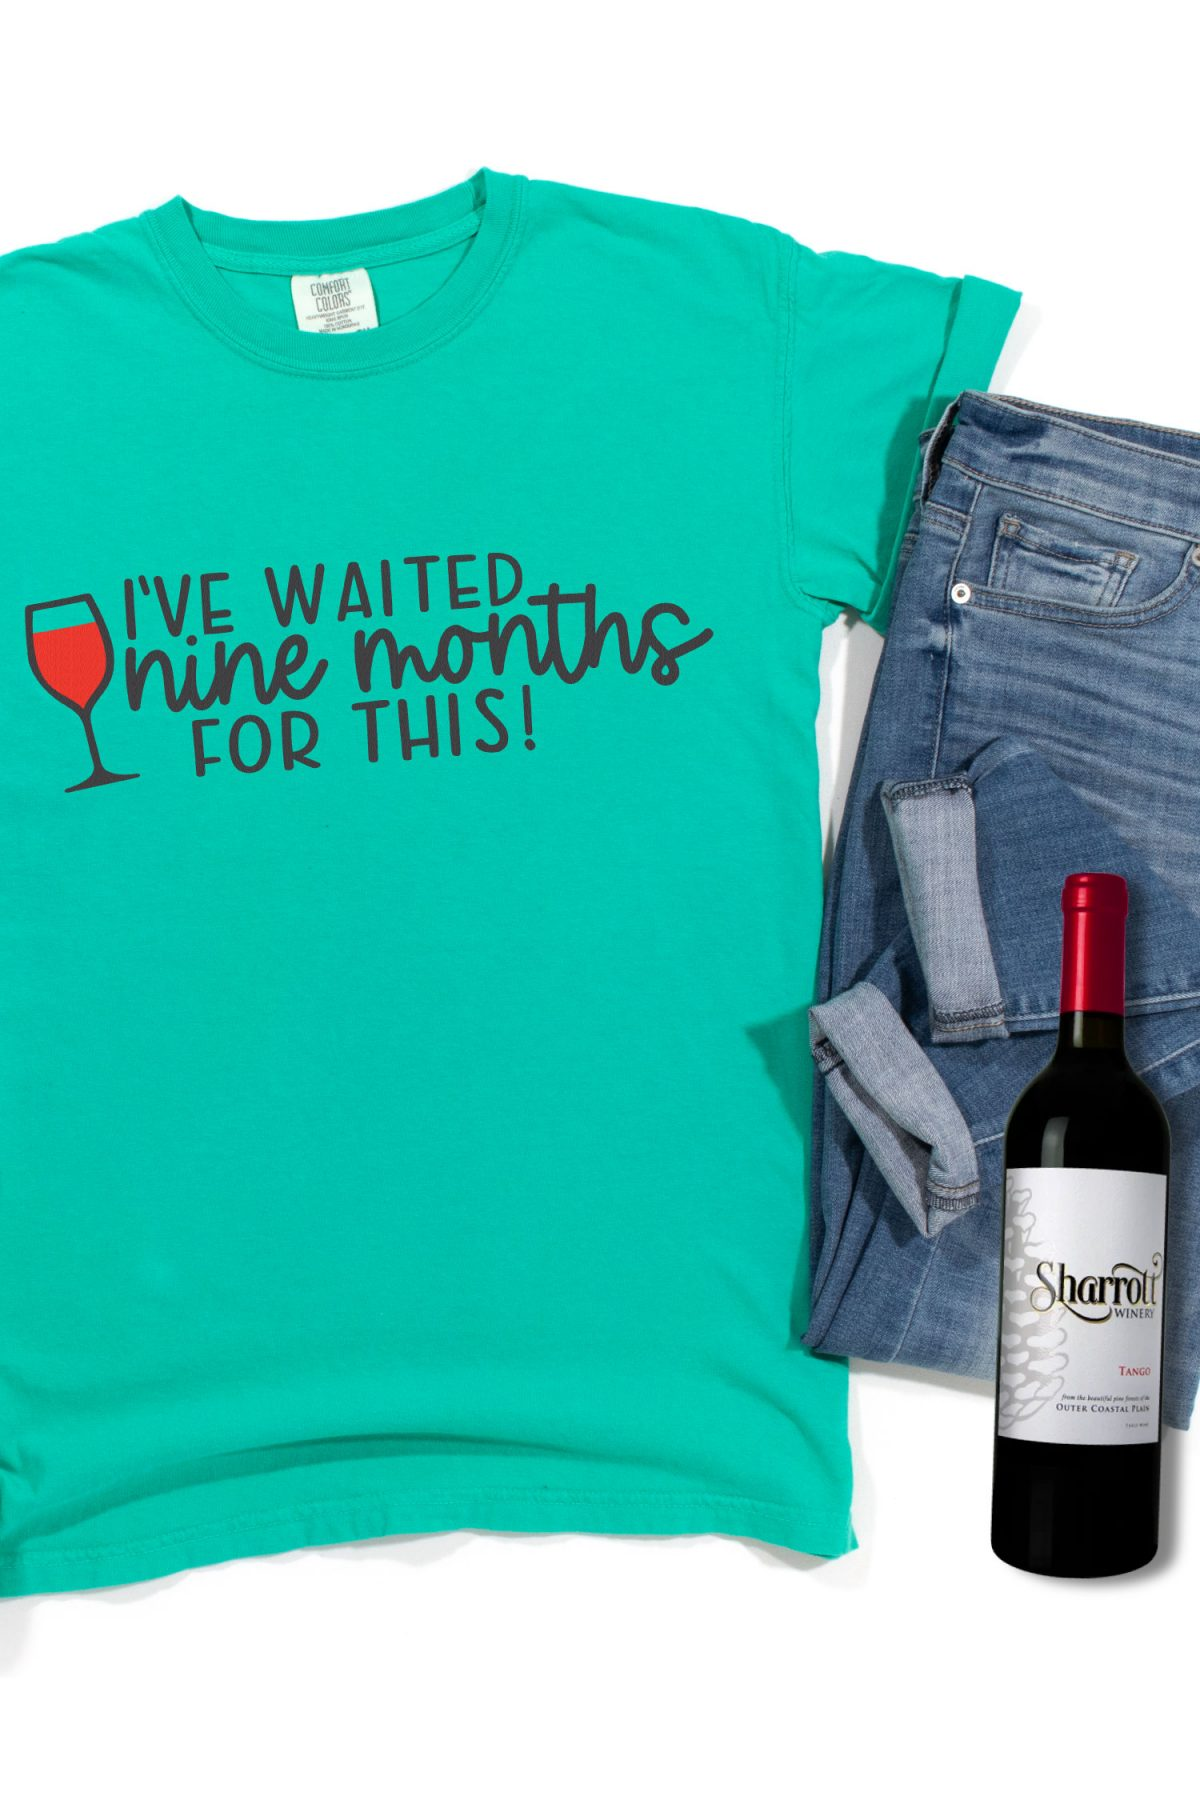 Free wine SVG on teal shirt with wine bottle and jeans